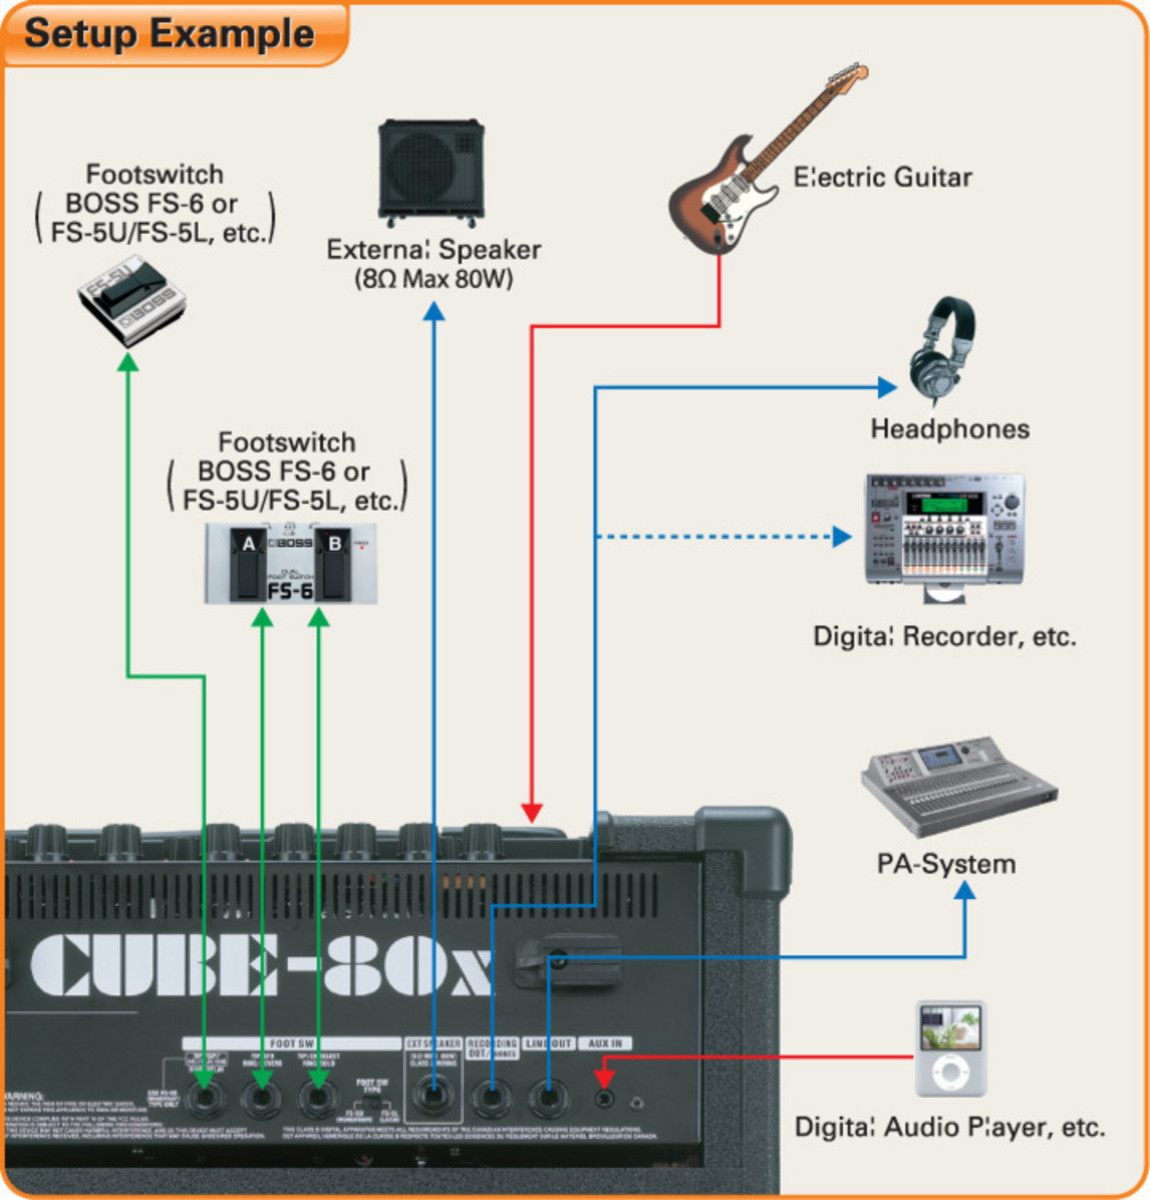 Boss Fs 6 Wiring Diagram Diagrams Harness Roland Cube 80x Guitar Amp At Gear4music Com Plow Light Bv9555